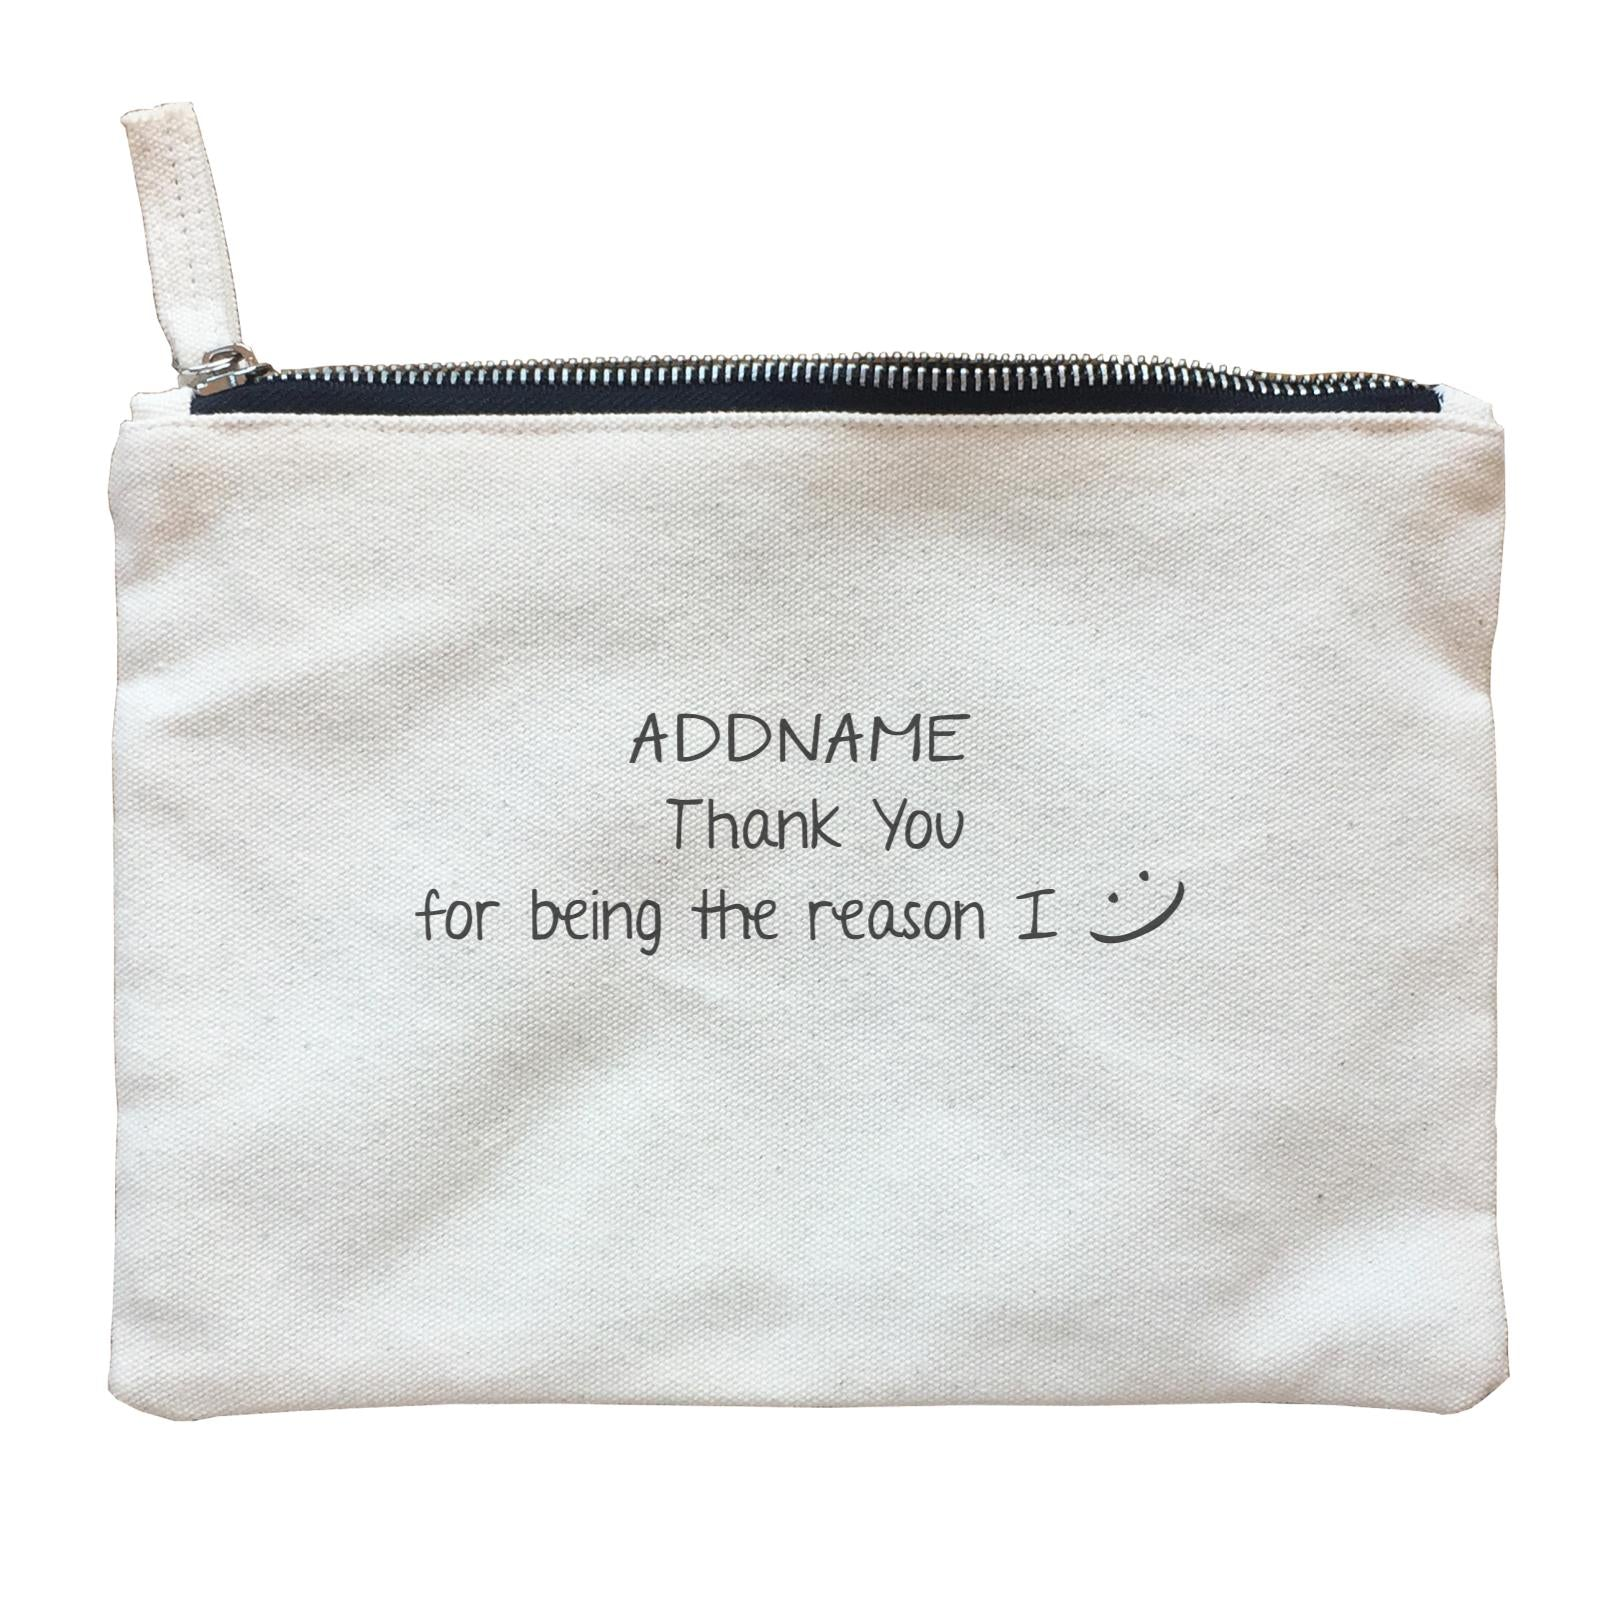 Best Friends Quotes Addname Thank You For Being The Reason I Smiley Face Zipper Pouch